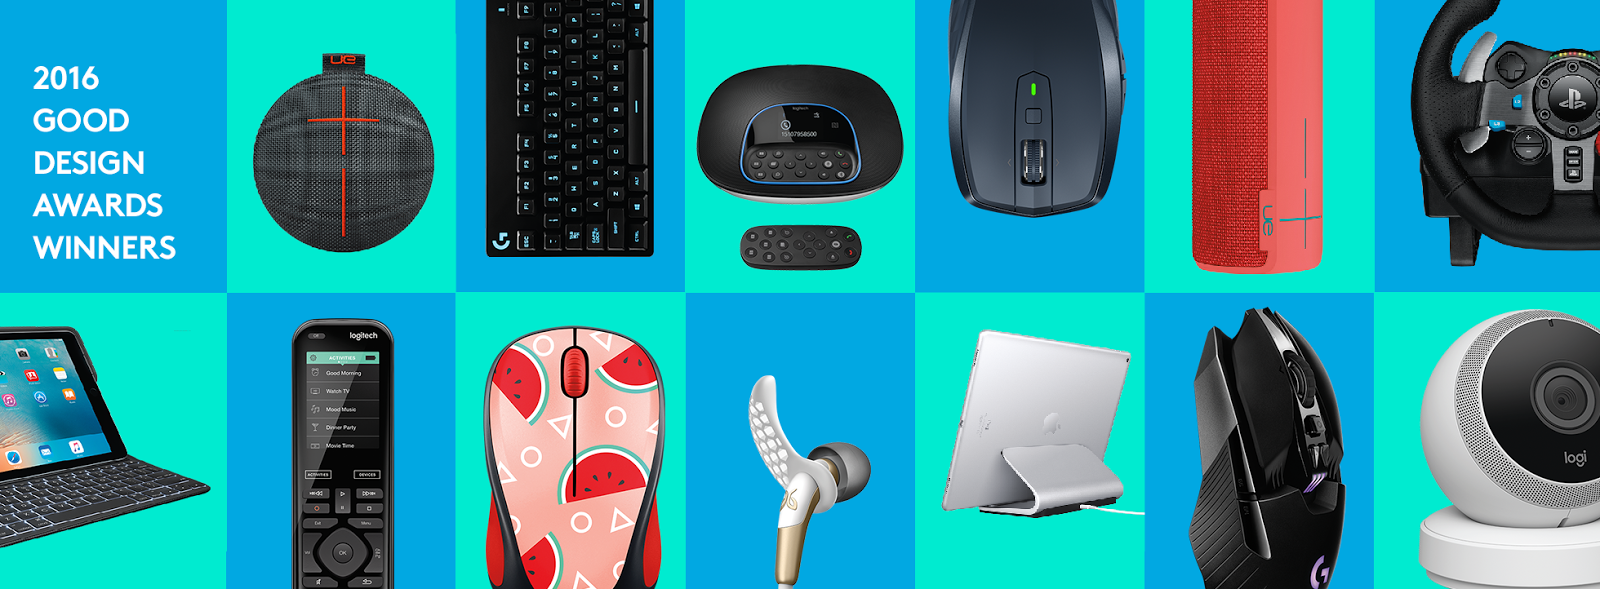 Good_Design_Awards_Logitech_2017.01.24